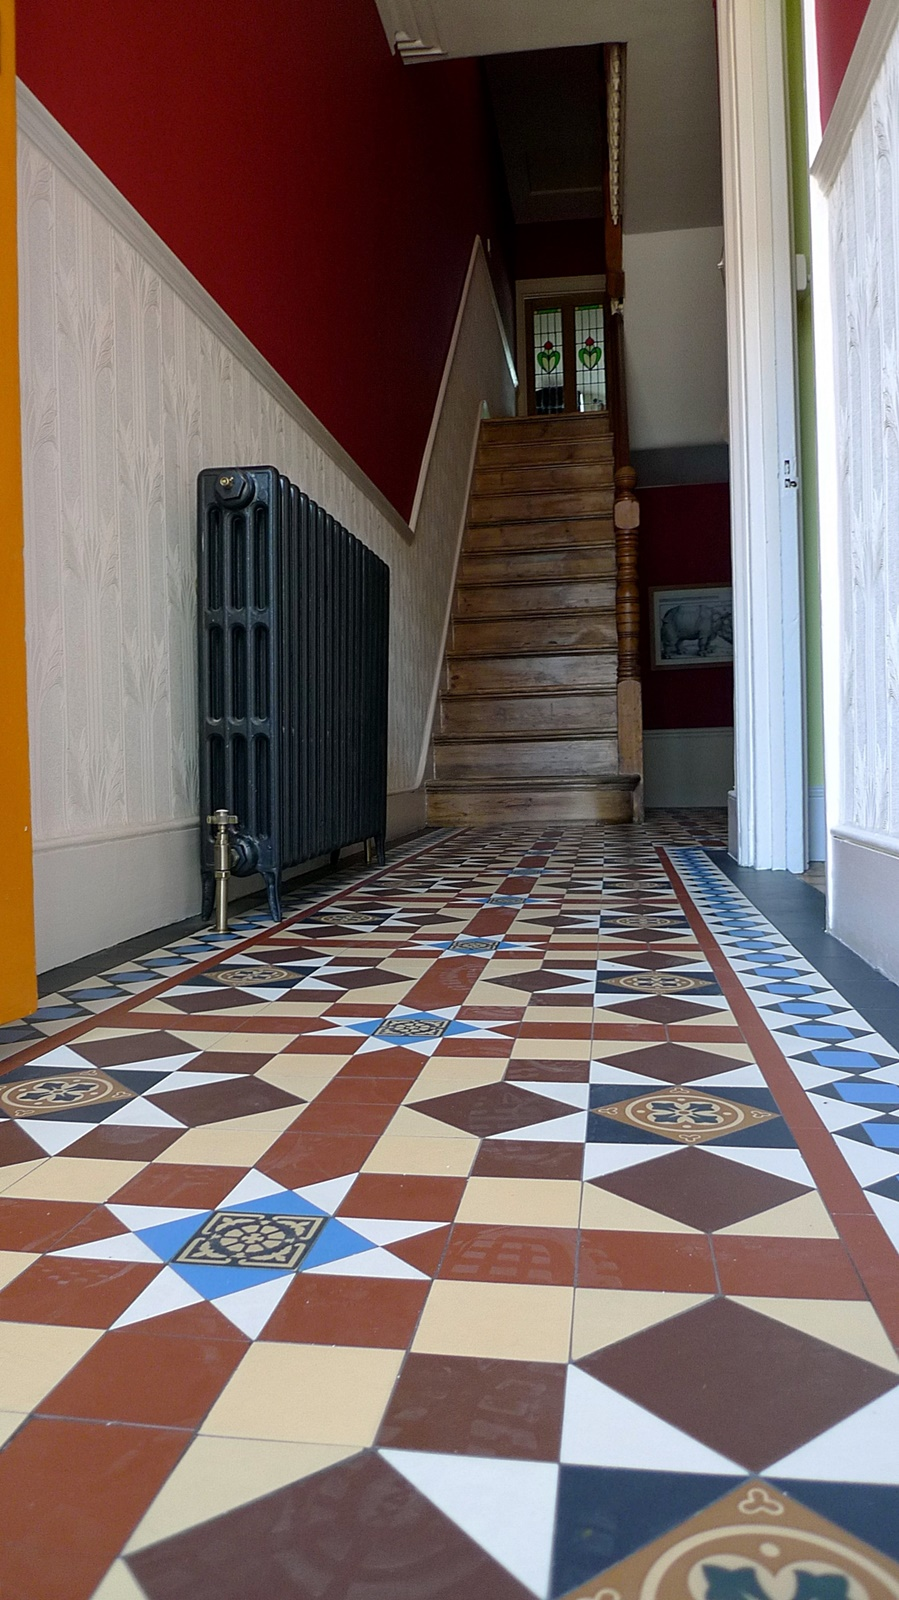 victorian mosaic til path hallway entrance peckham brockley dulwich forest hill london